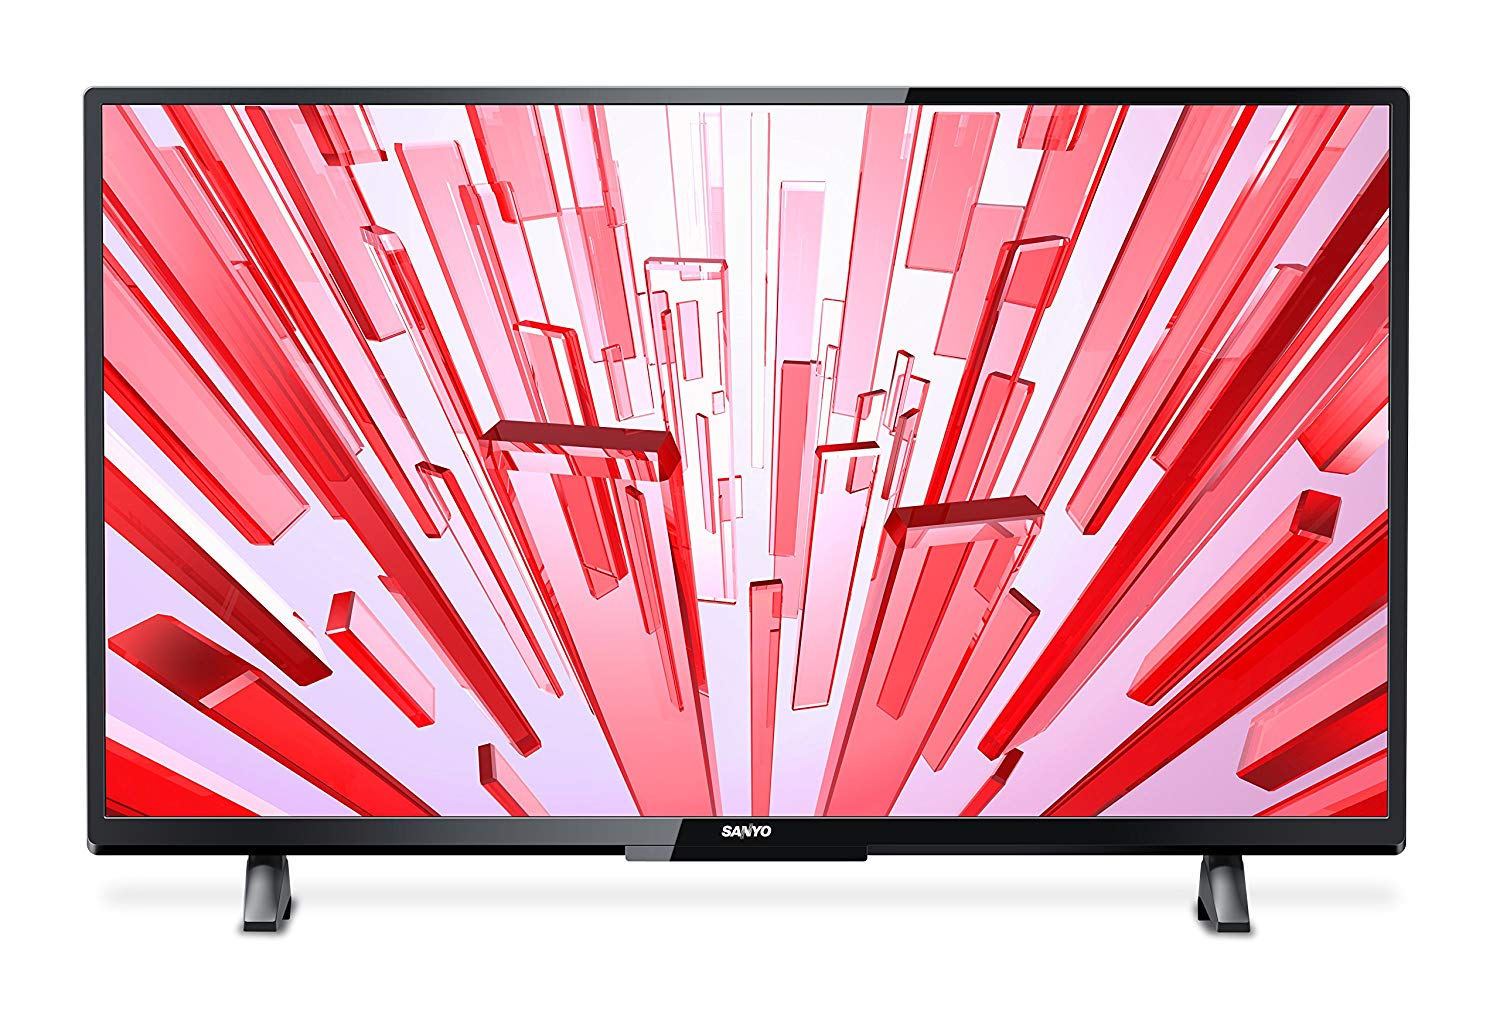 An image related to Sanyo FW40D36F 40-Inch FHD LED TV